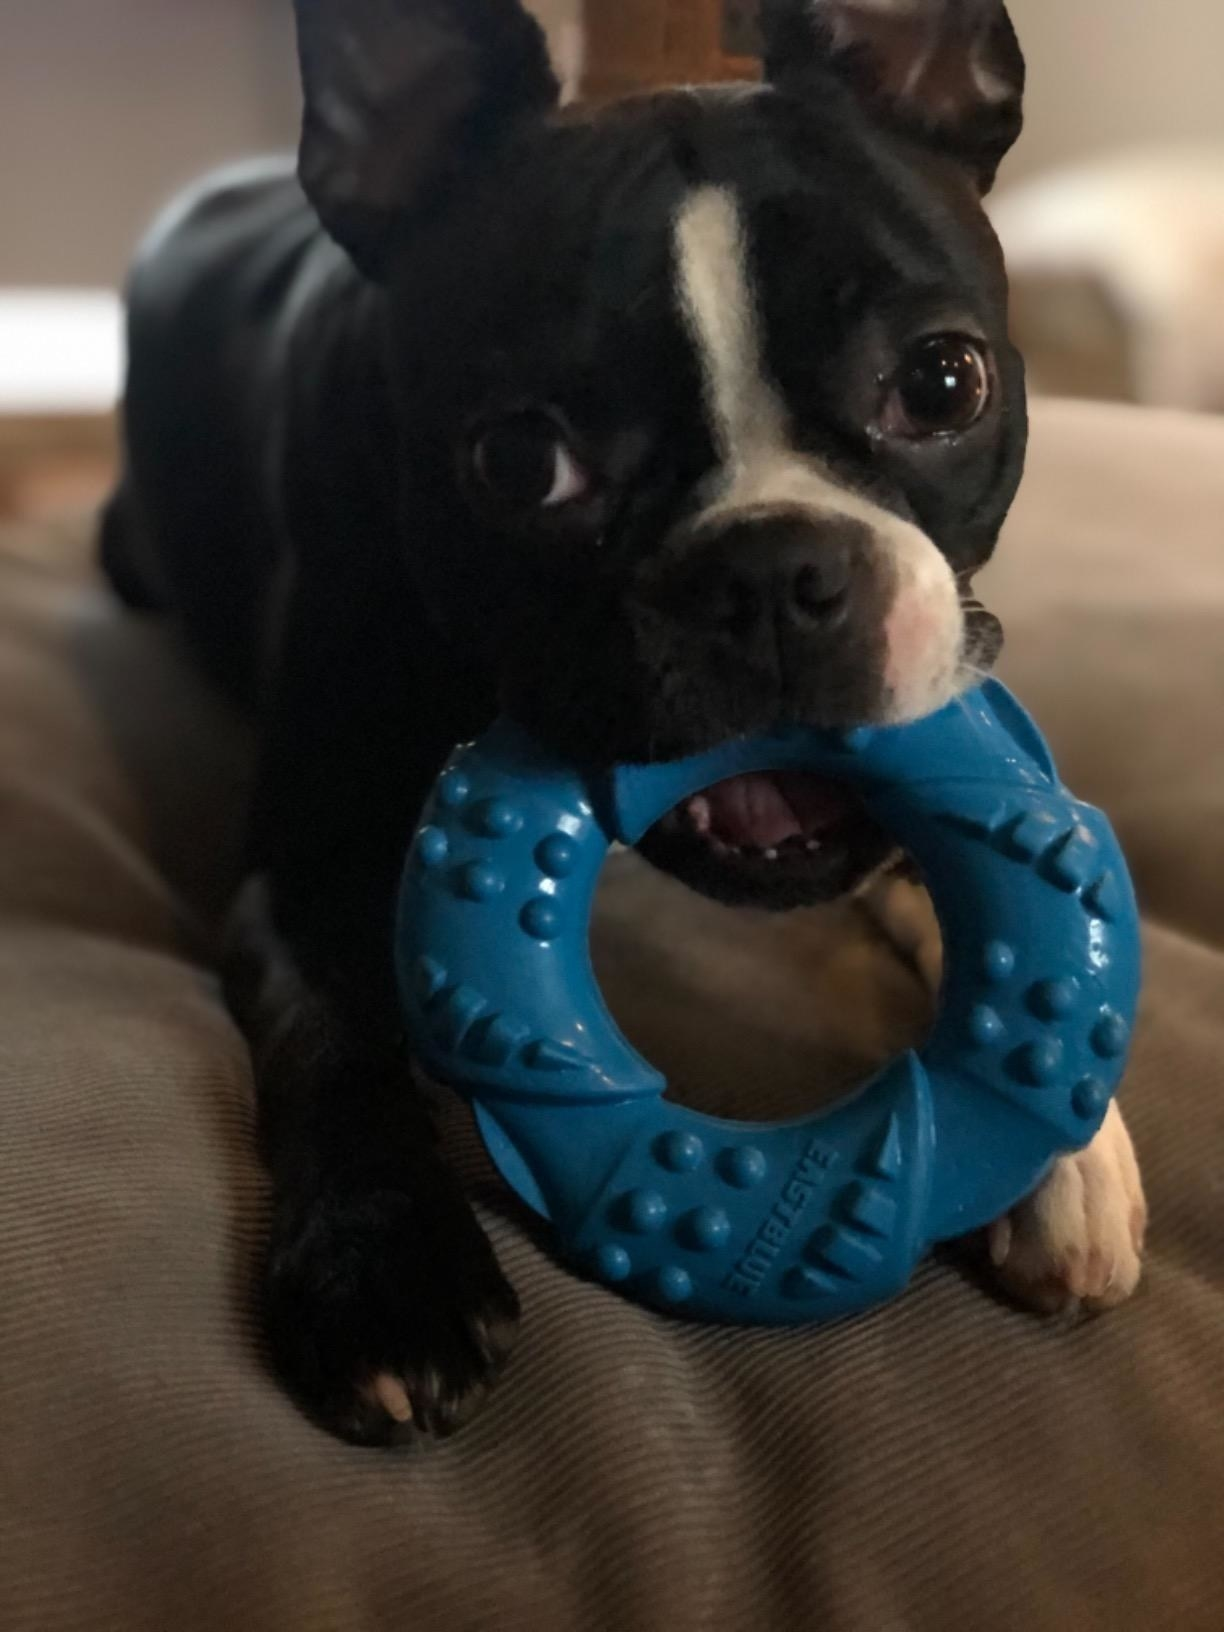 A black and white Boston terrier with the blue textured ring in its mouth